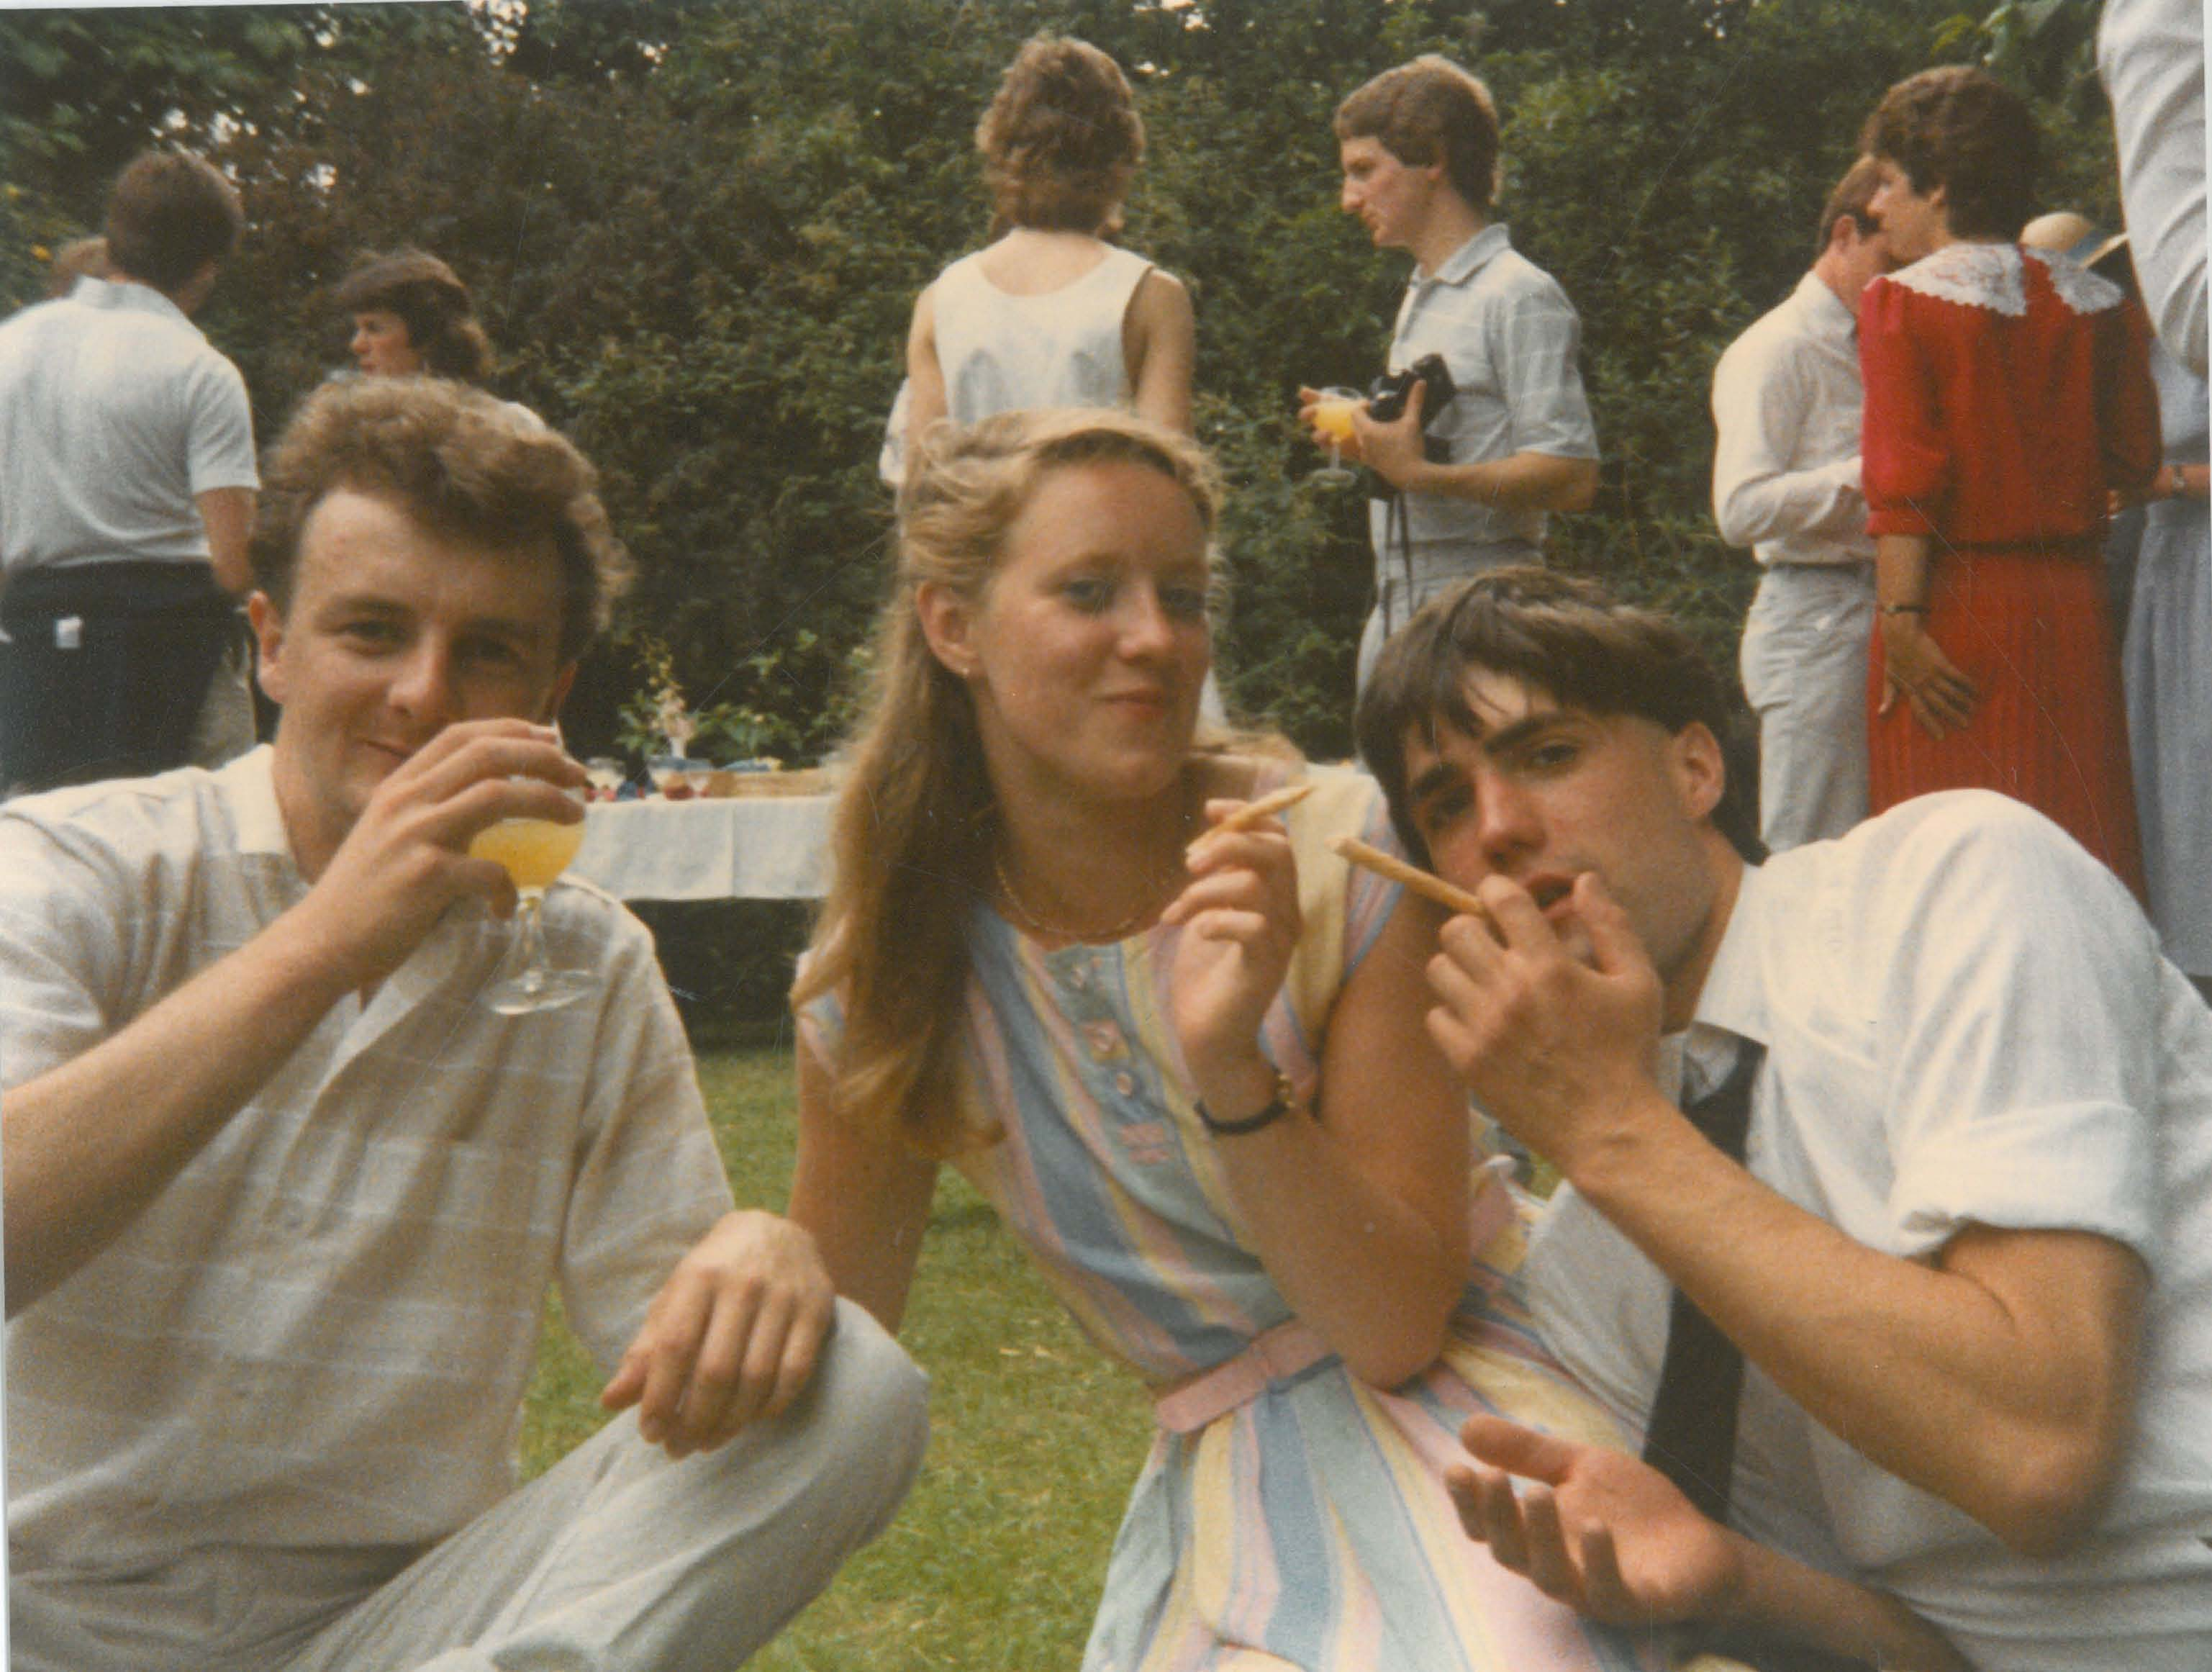 Fiona McIntosh, Matthew Holt and Andy Makin when at Fitzwilliam as students